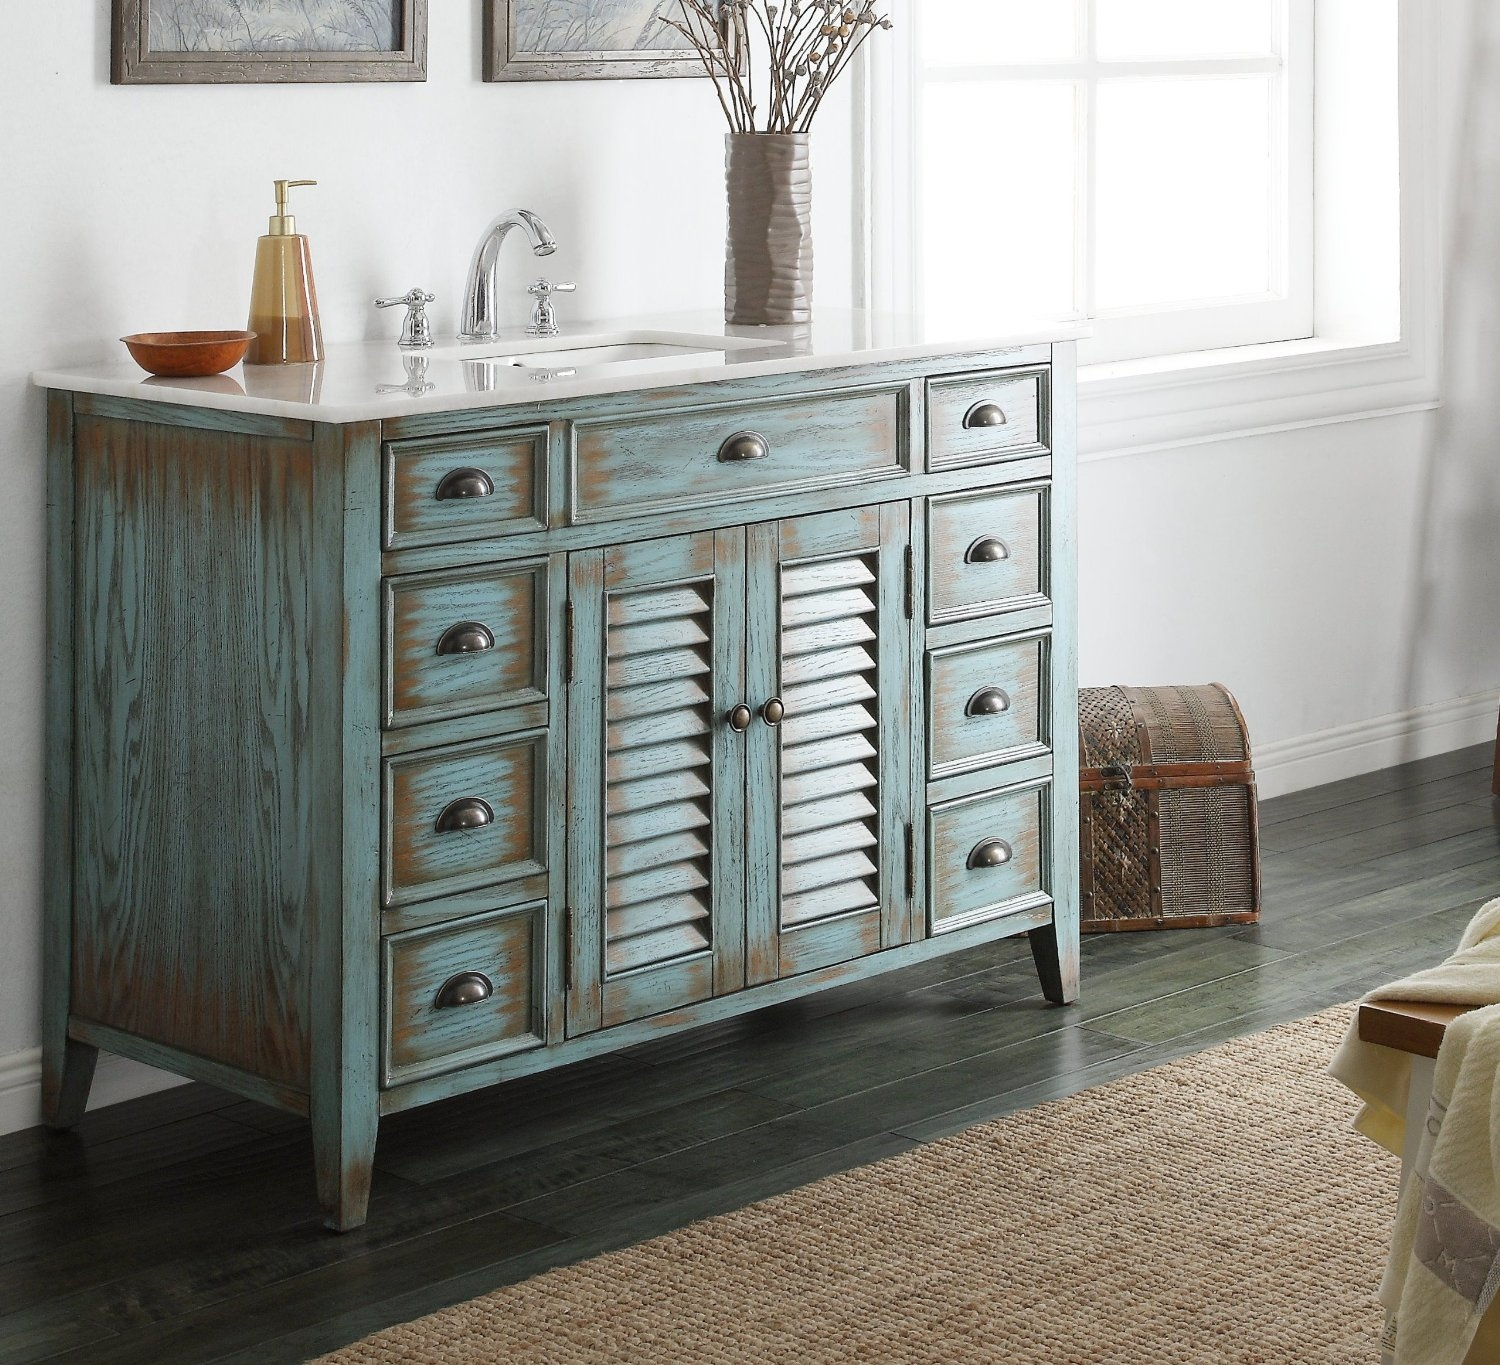 Bathroom Vanity Cabinets Cottage Style